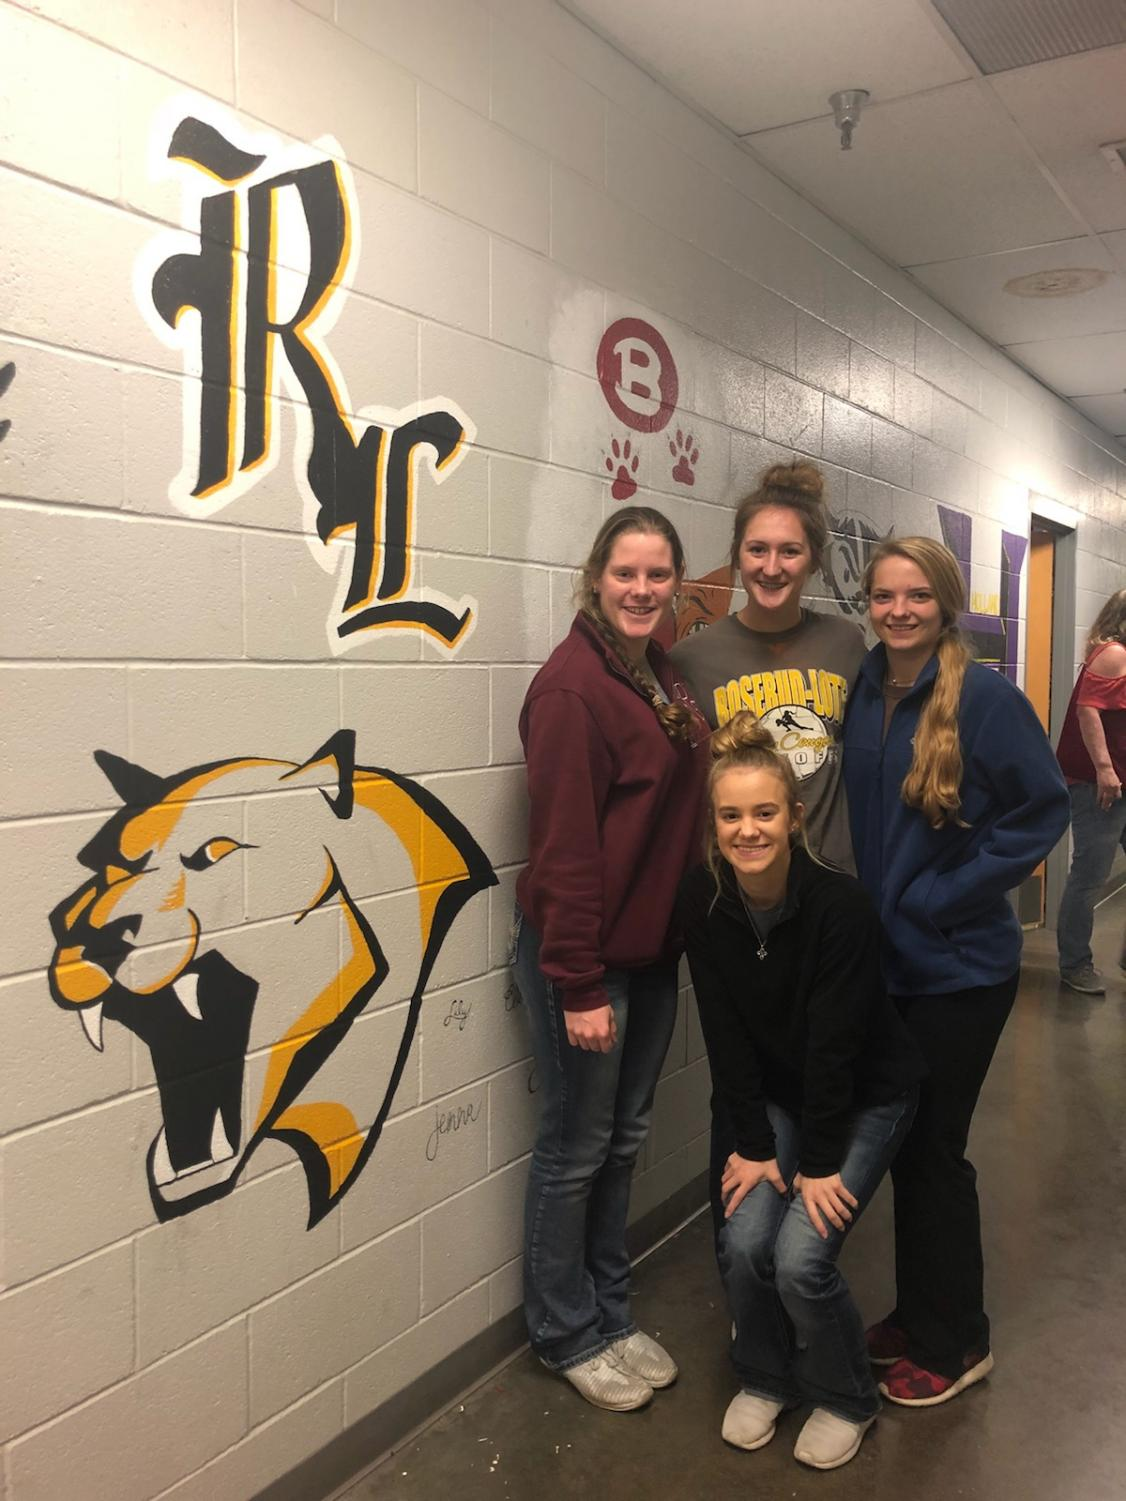 Clara Coker, Jenna Kleypas, Christa Niemeyer and Lily Dawson pose next to their artwork.